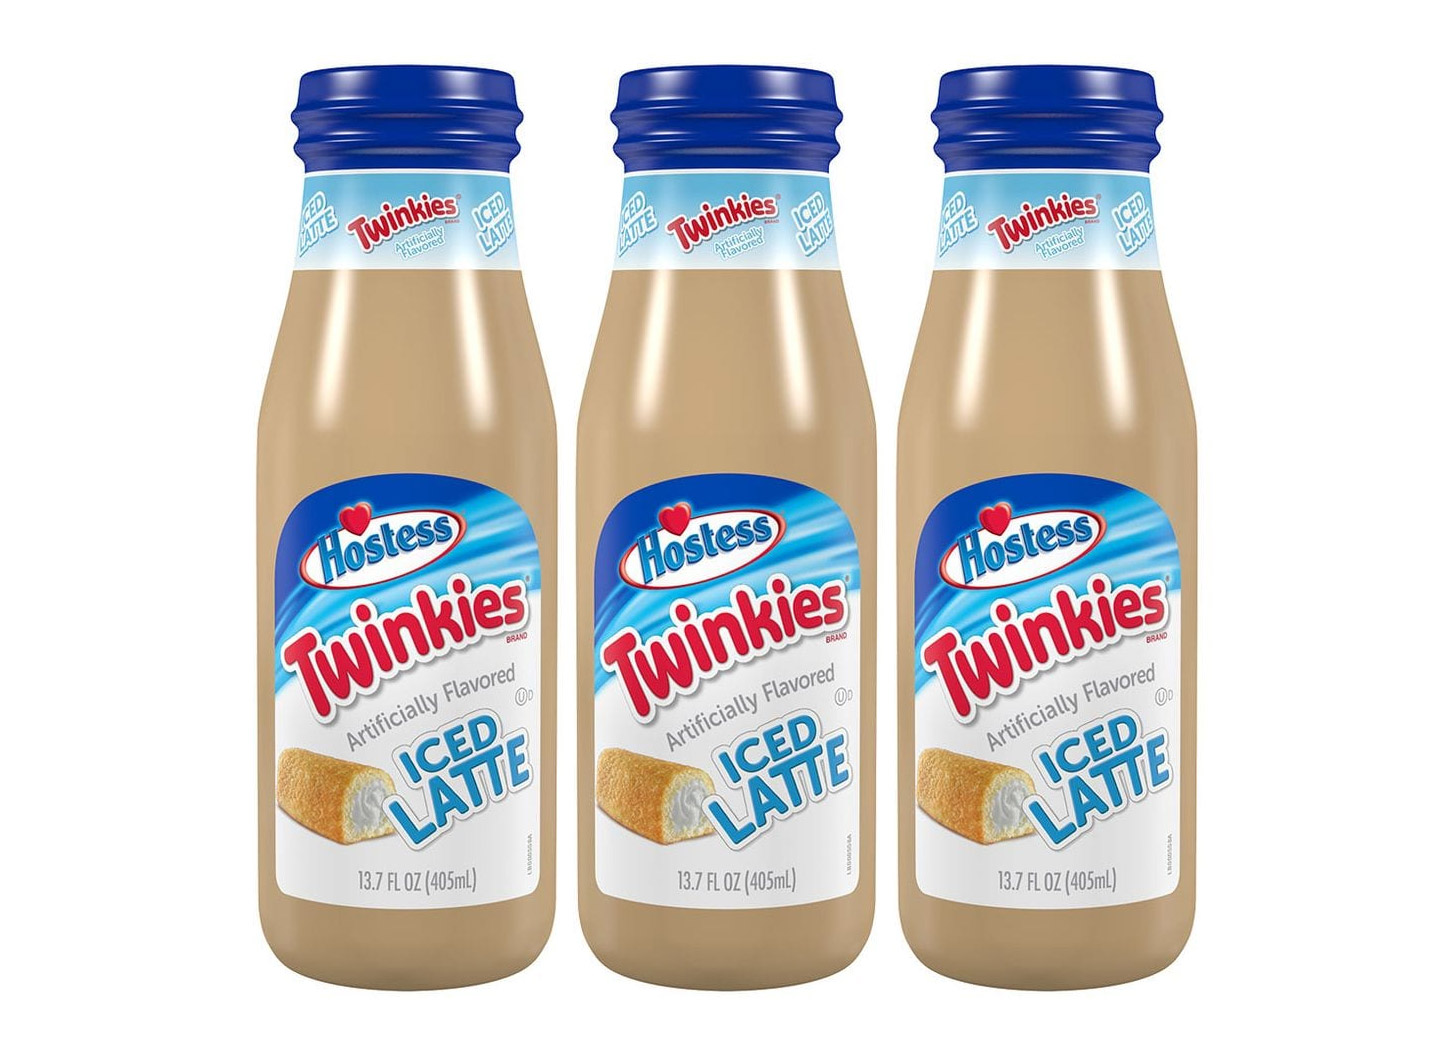 Twinkies flavored Ice Latte bottles